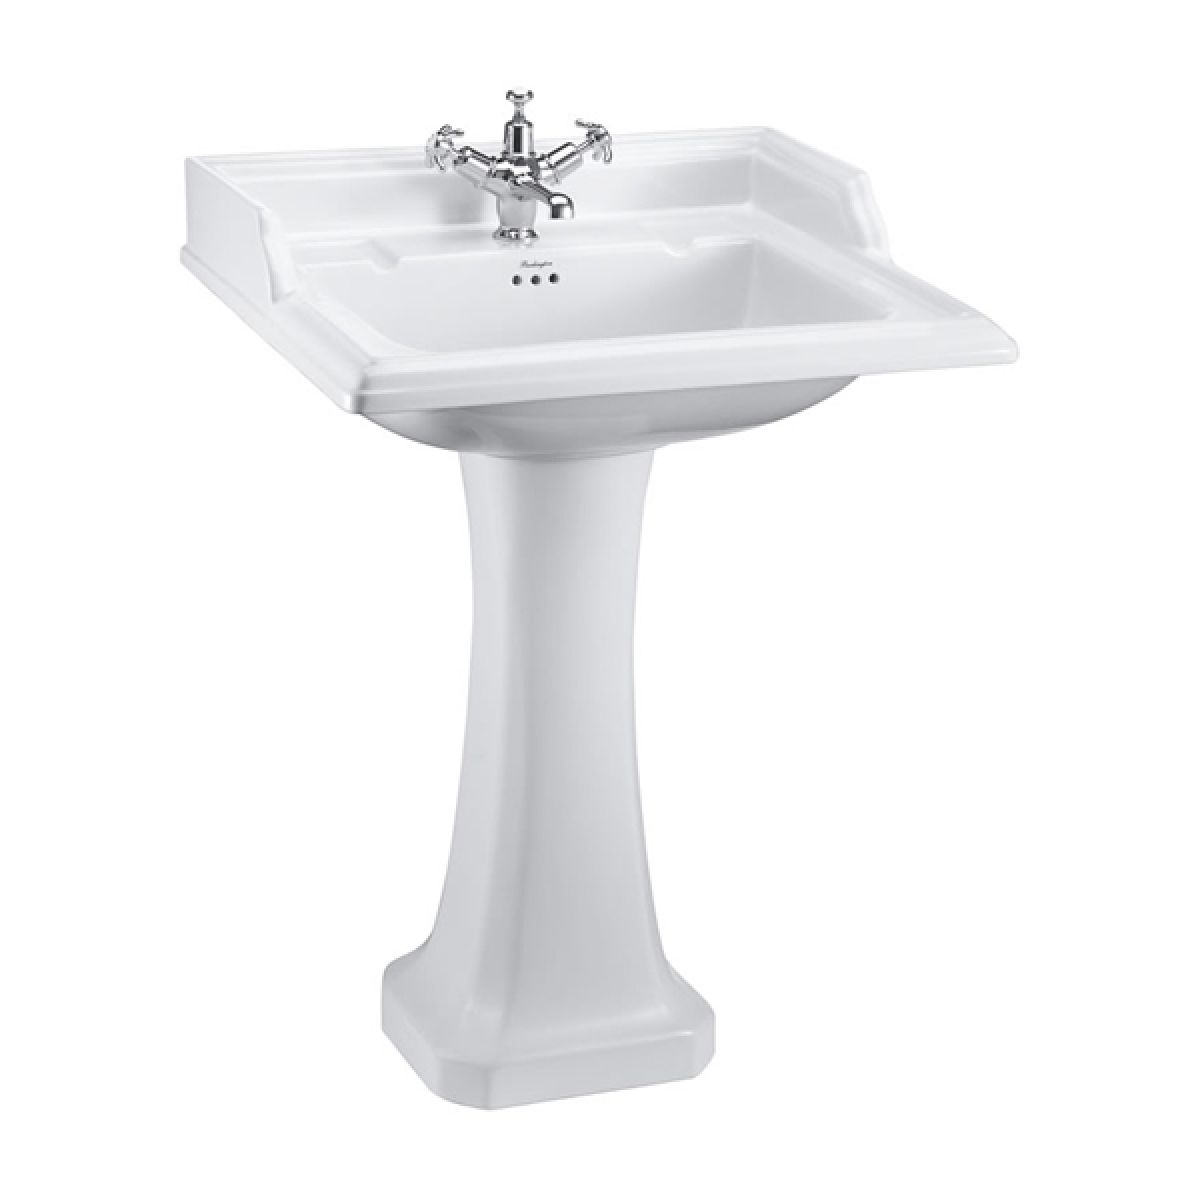 Burlington Classic Square Basin with Full Pedestal 650mm